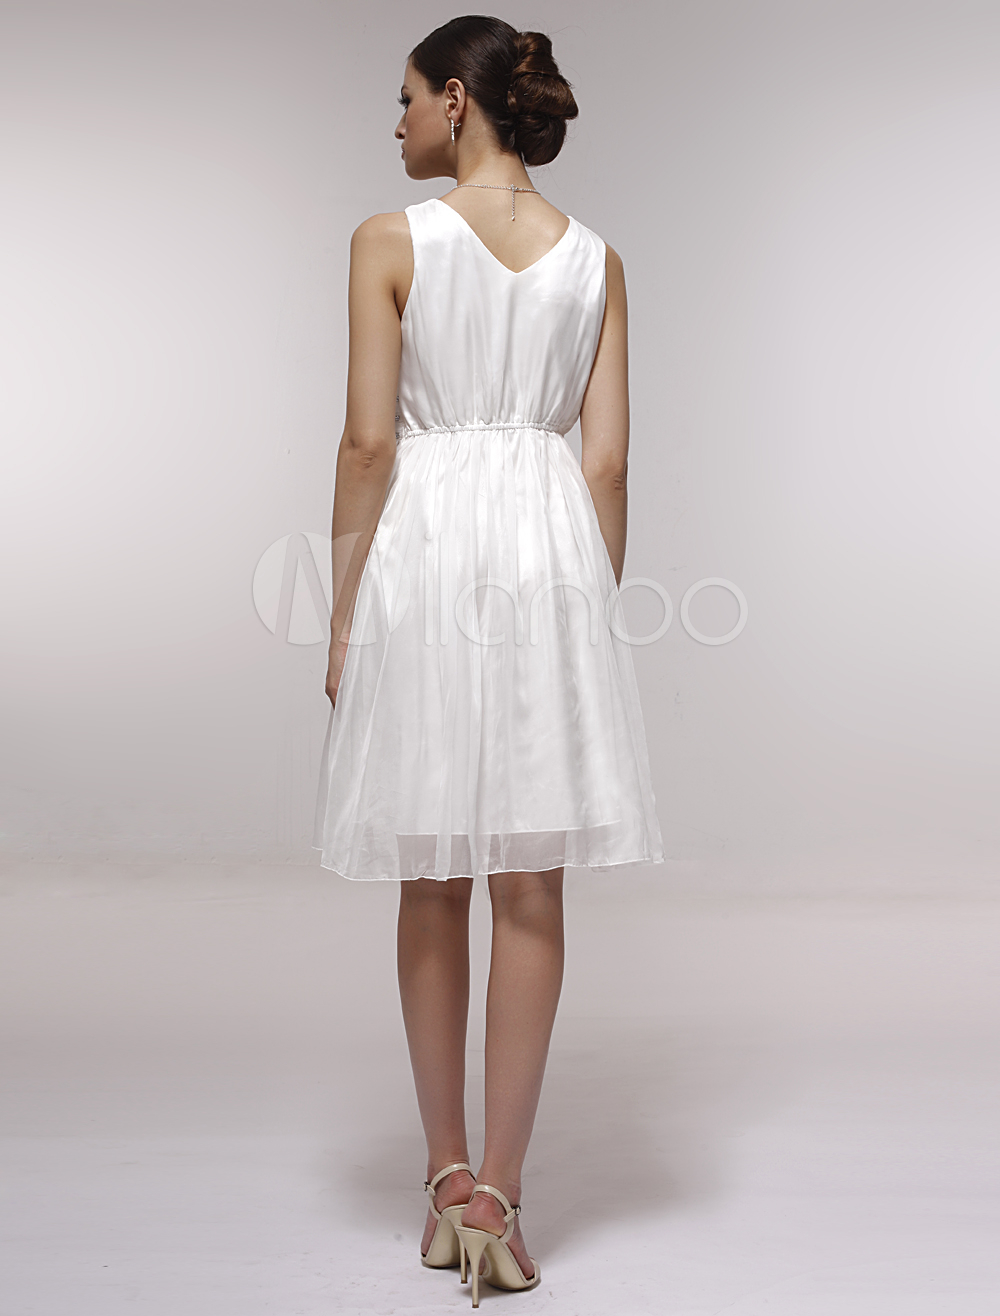 c5db2794725 ... Pretty White Satin Gauze V-neck Knee-length Graduation Dress-No.3 ...